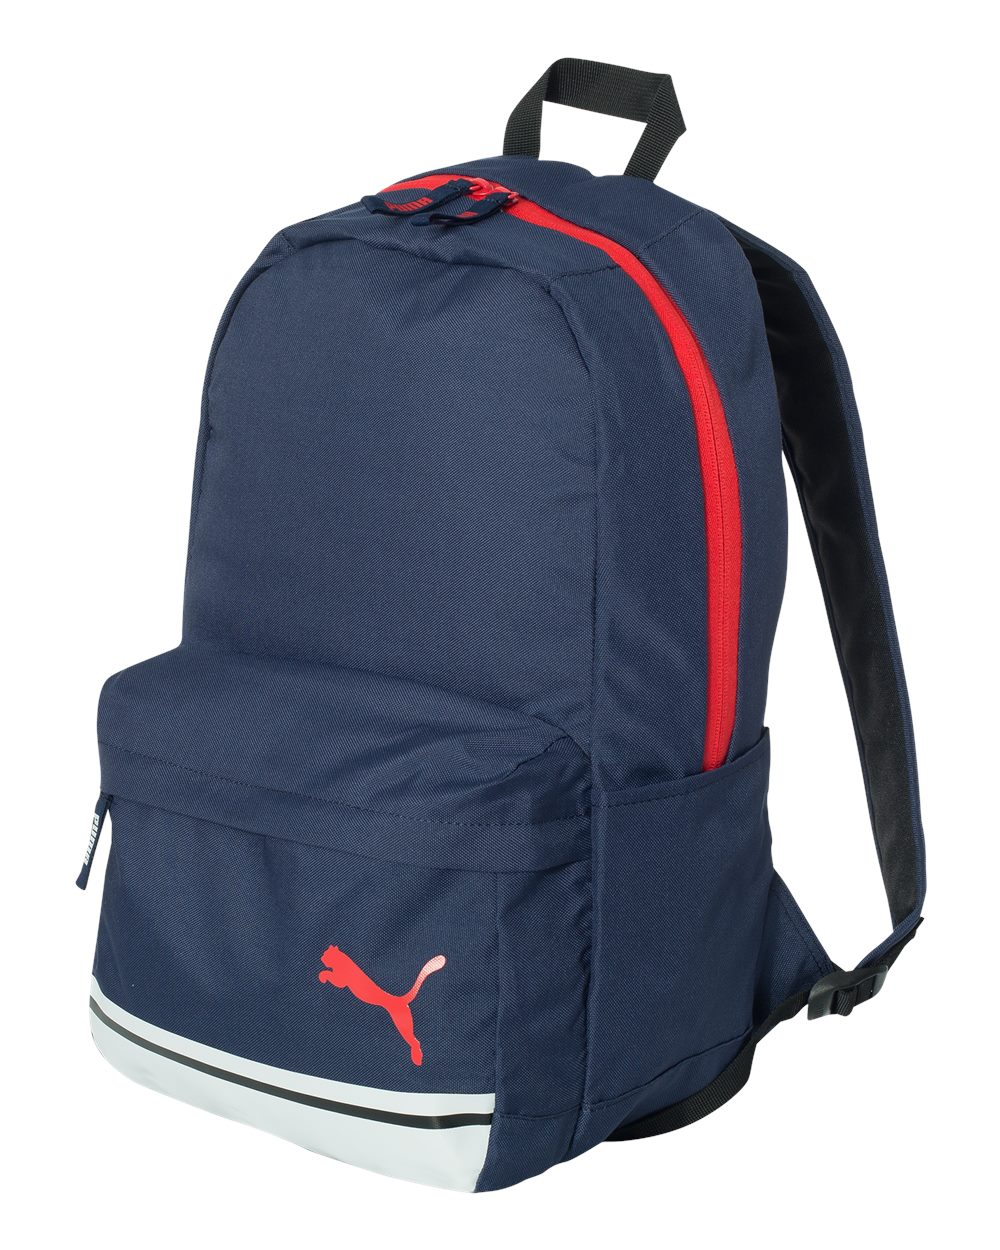 PUMA PSC1003 - 16L Archetype Backpack